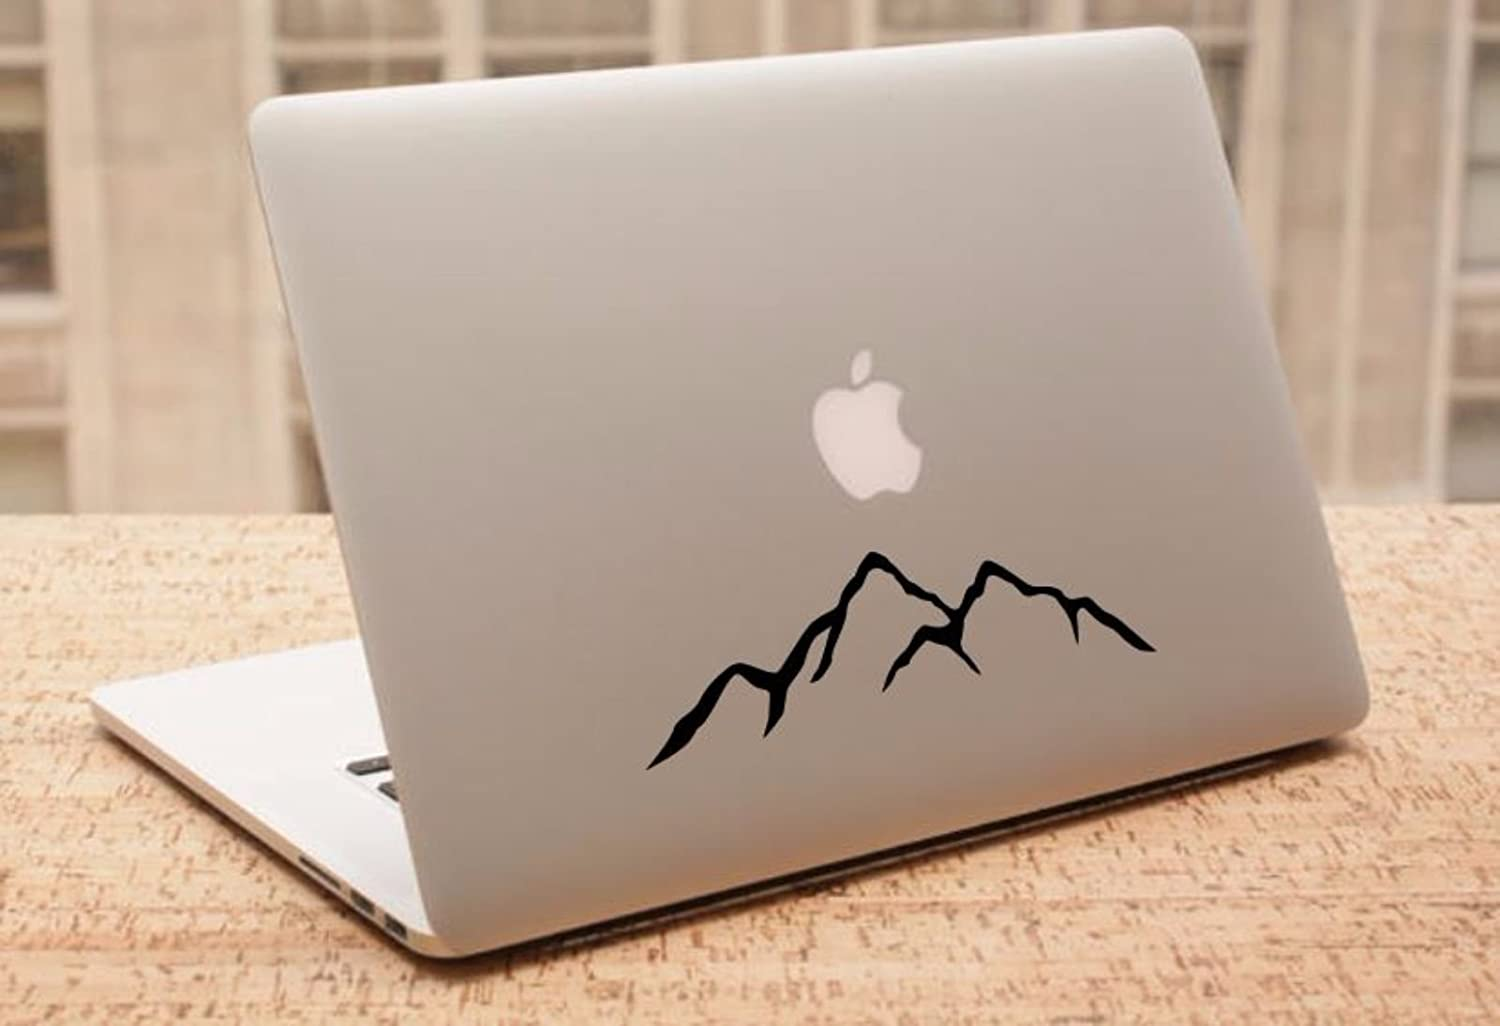 "Maxx Graphixx Decal - Mountains Silhouette - Car Decal, Laptop Decal, MacBook Decal, Ipad Decal (2"" x 6"", Black)"